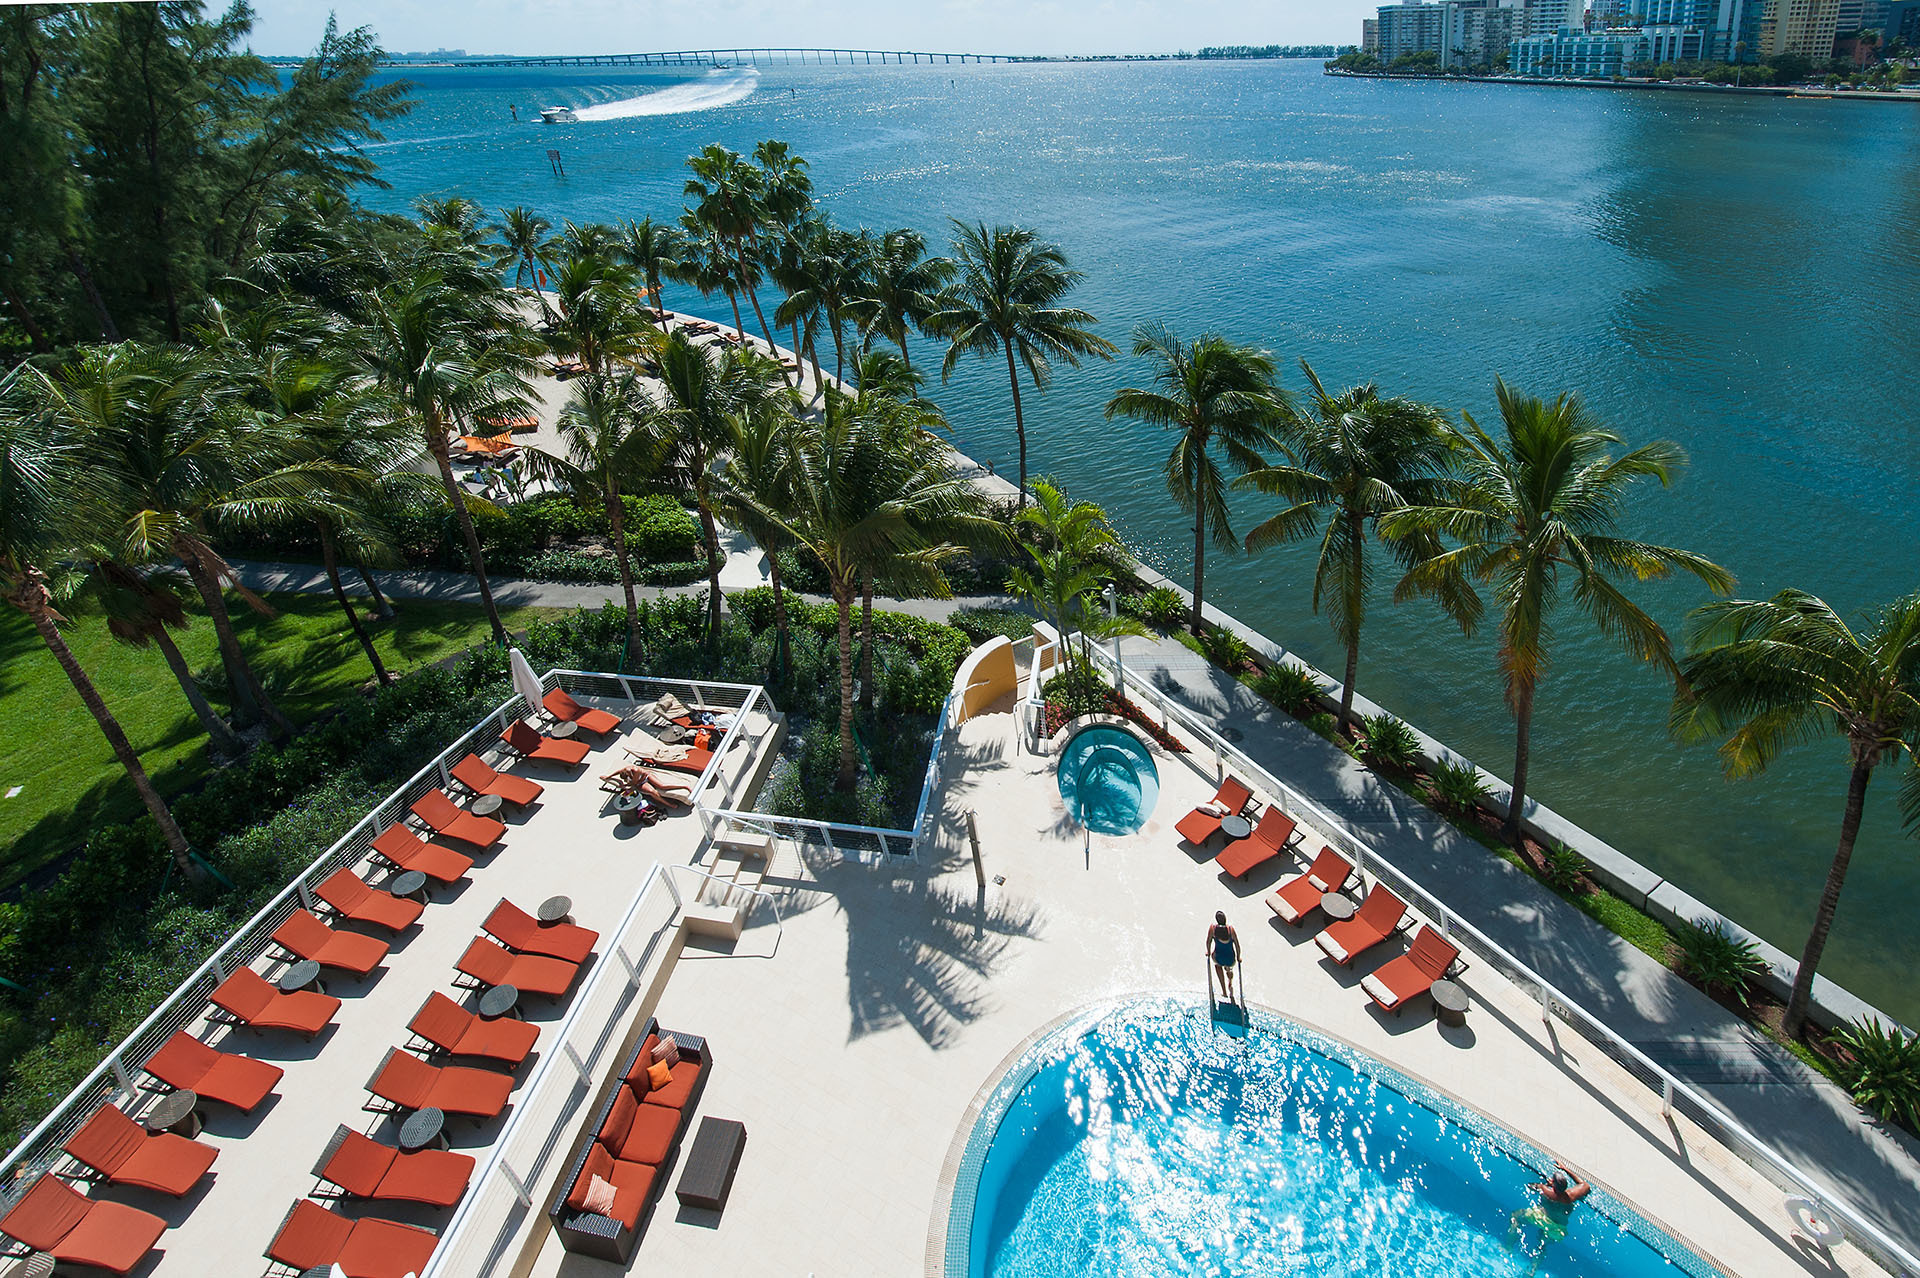 Food, Drink And Hotel Tips For Your Next Miami Trip